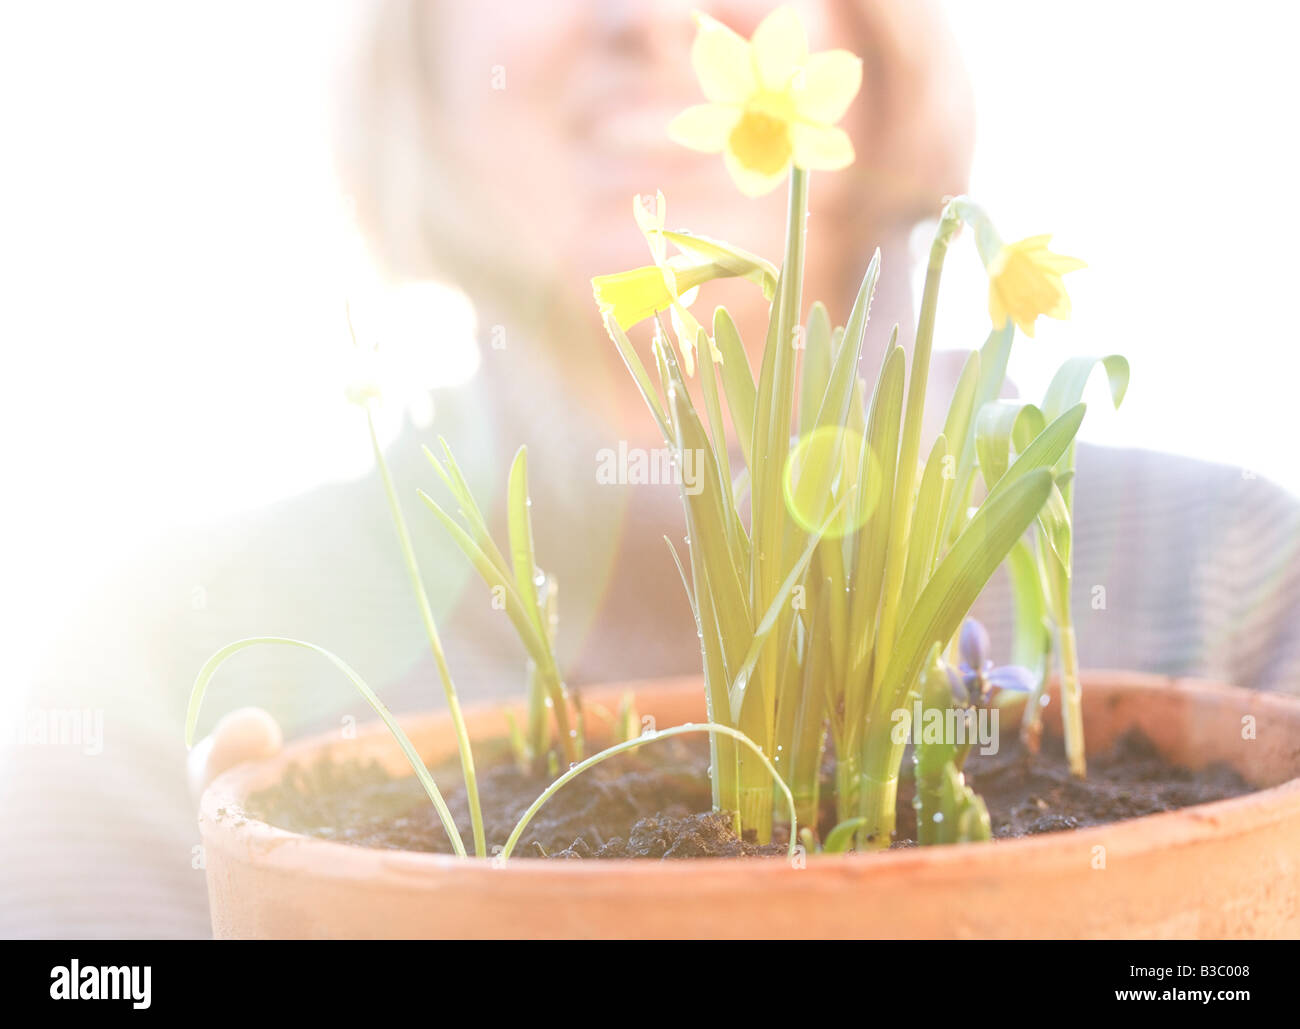 A woman admiring her daffodils - Stock Image